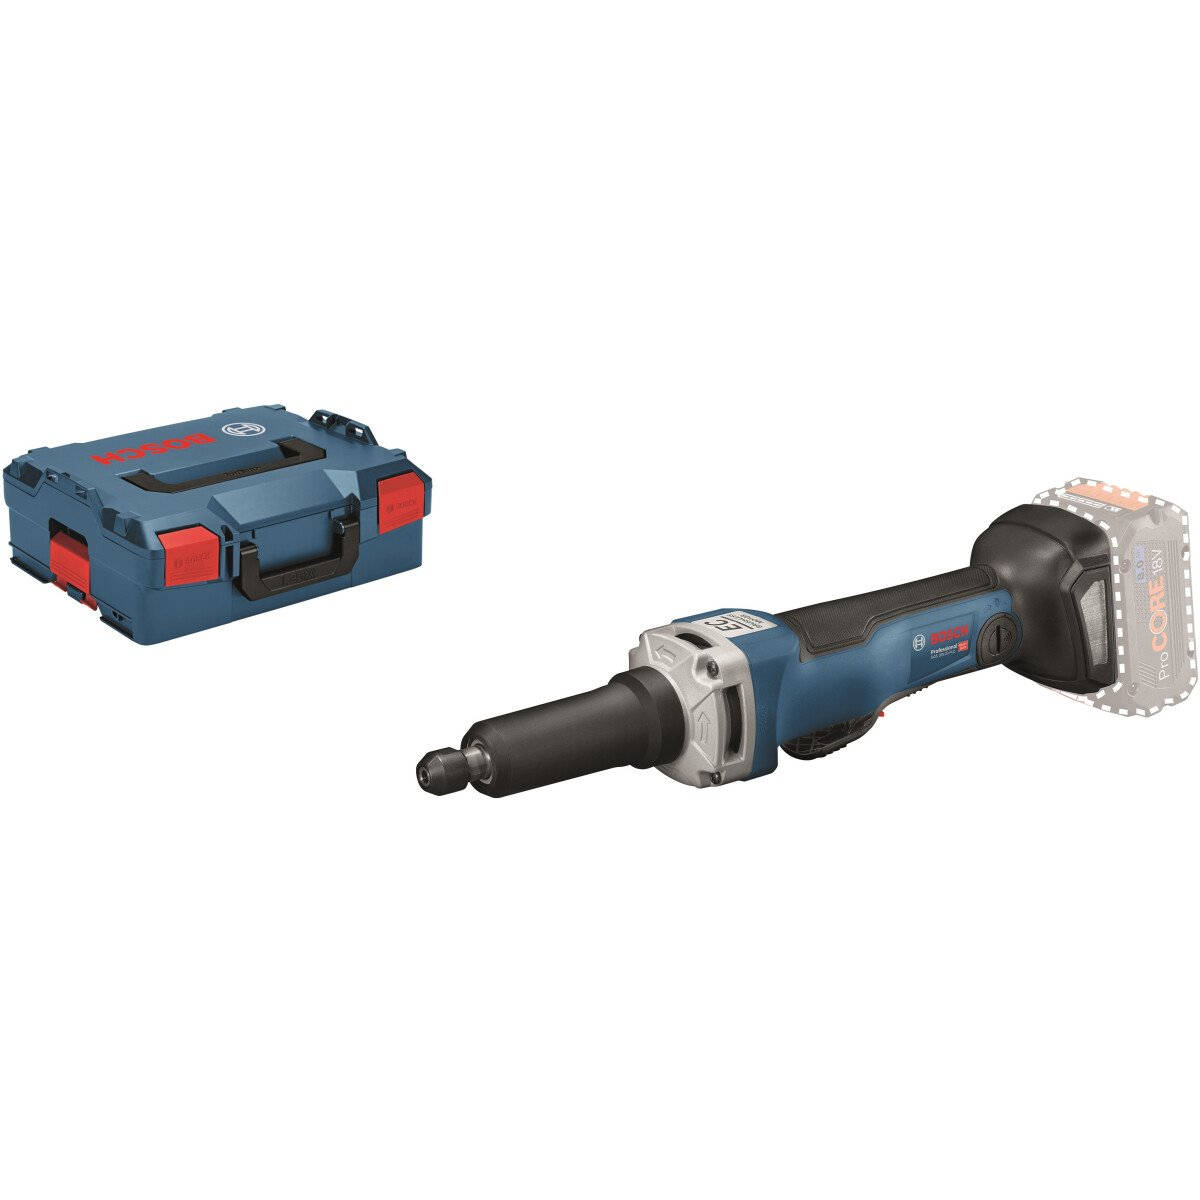 Bosch GGS 18 V-23 LC Body Only 18v Brushless Straight Grinder with Paddle Switch in L-Boxx